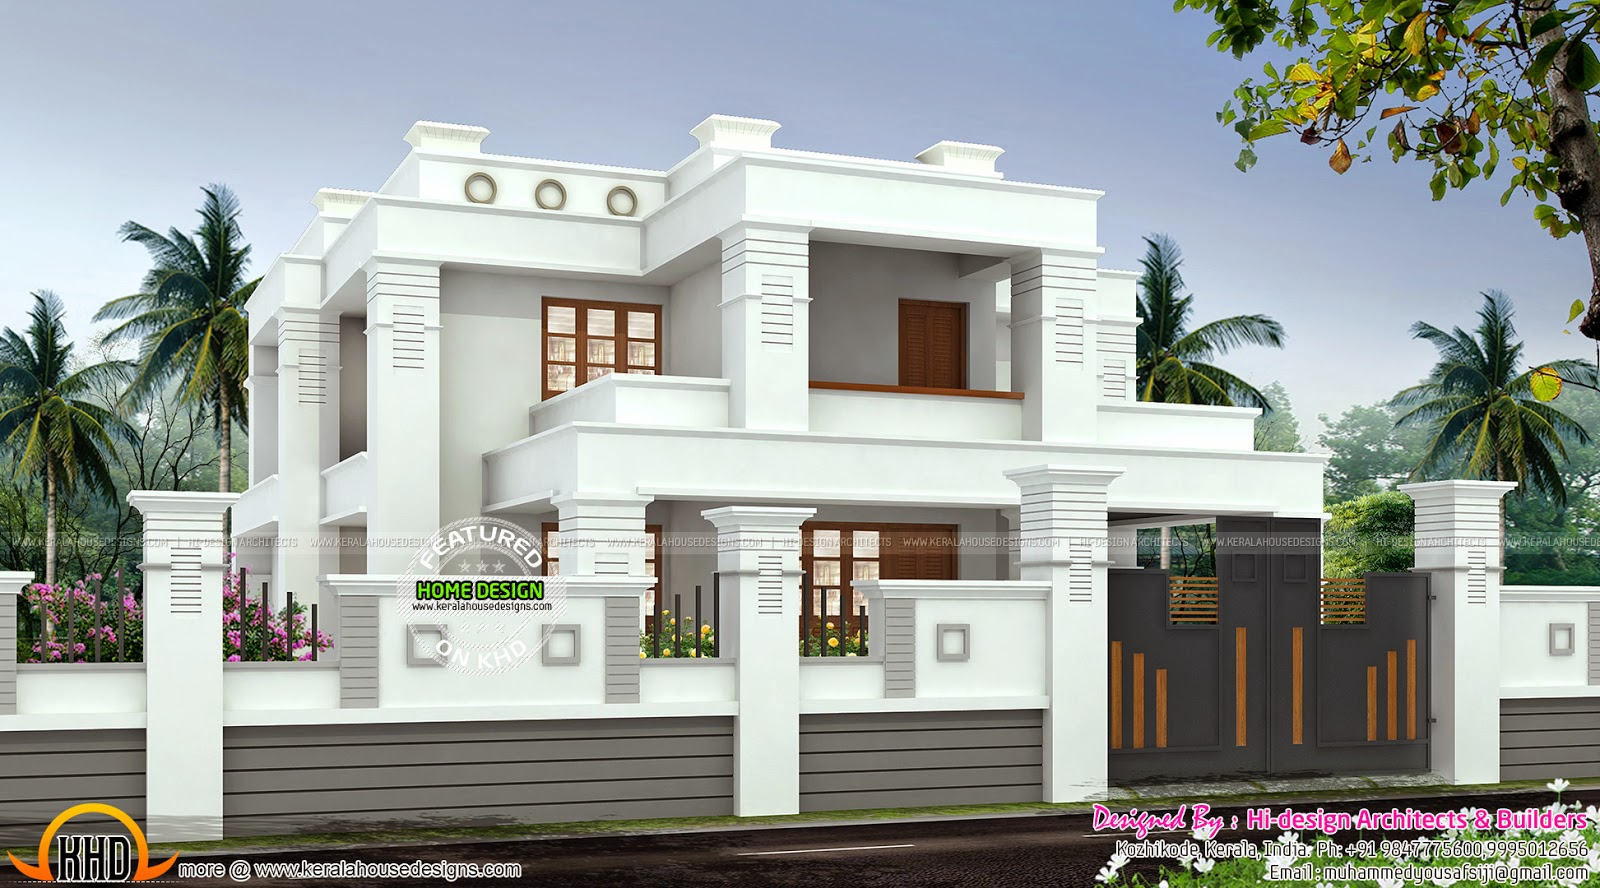 Home Flat Roof Style Kerala Home Design And Floor Plans